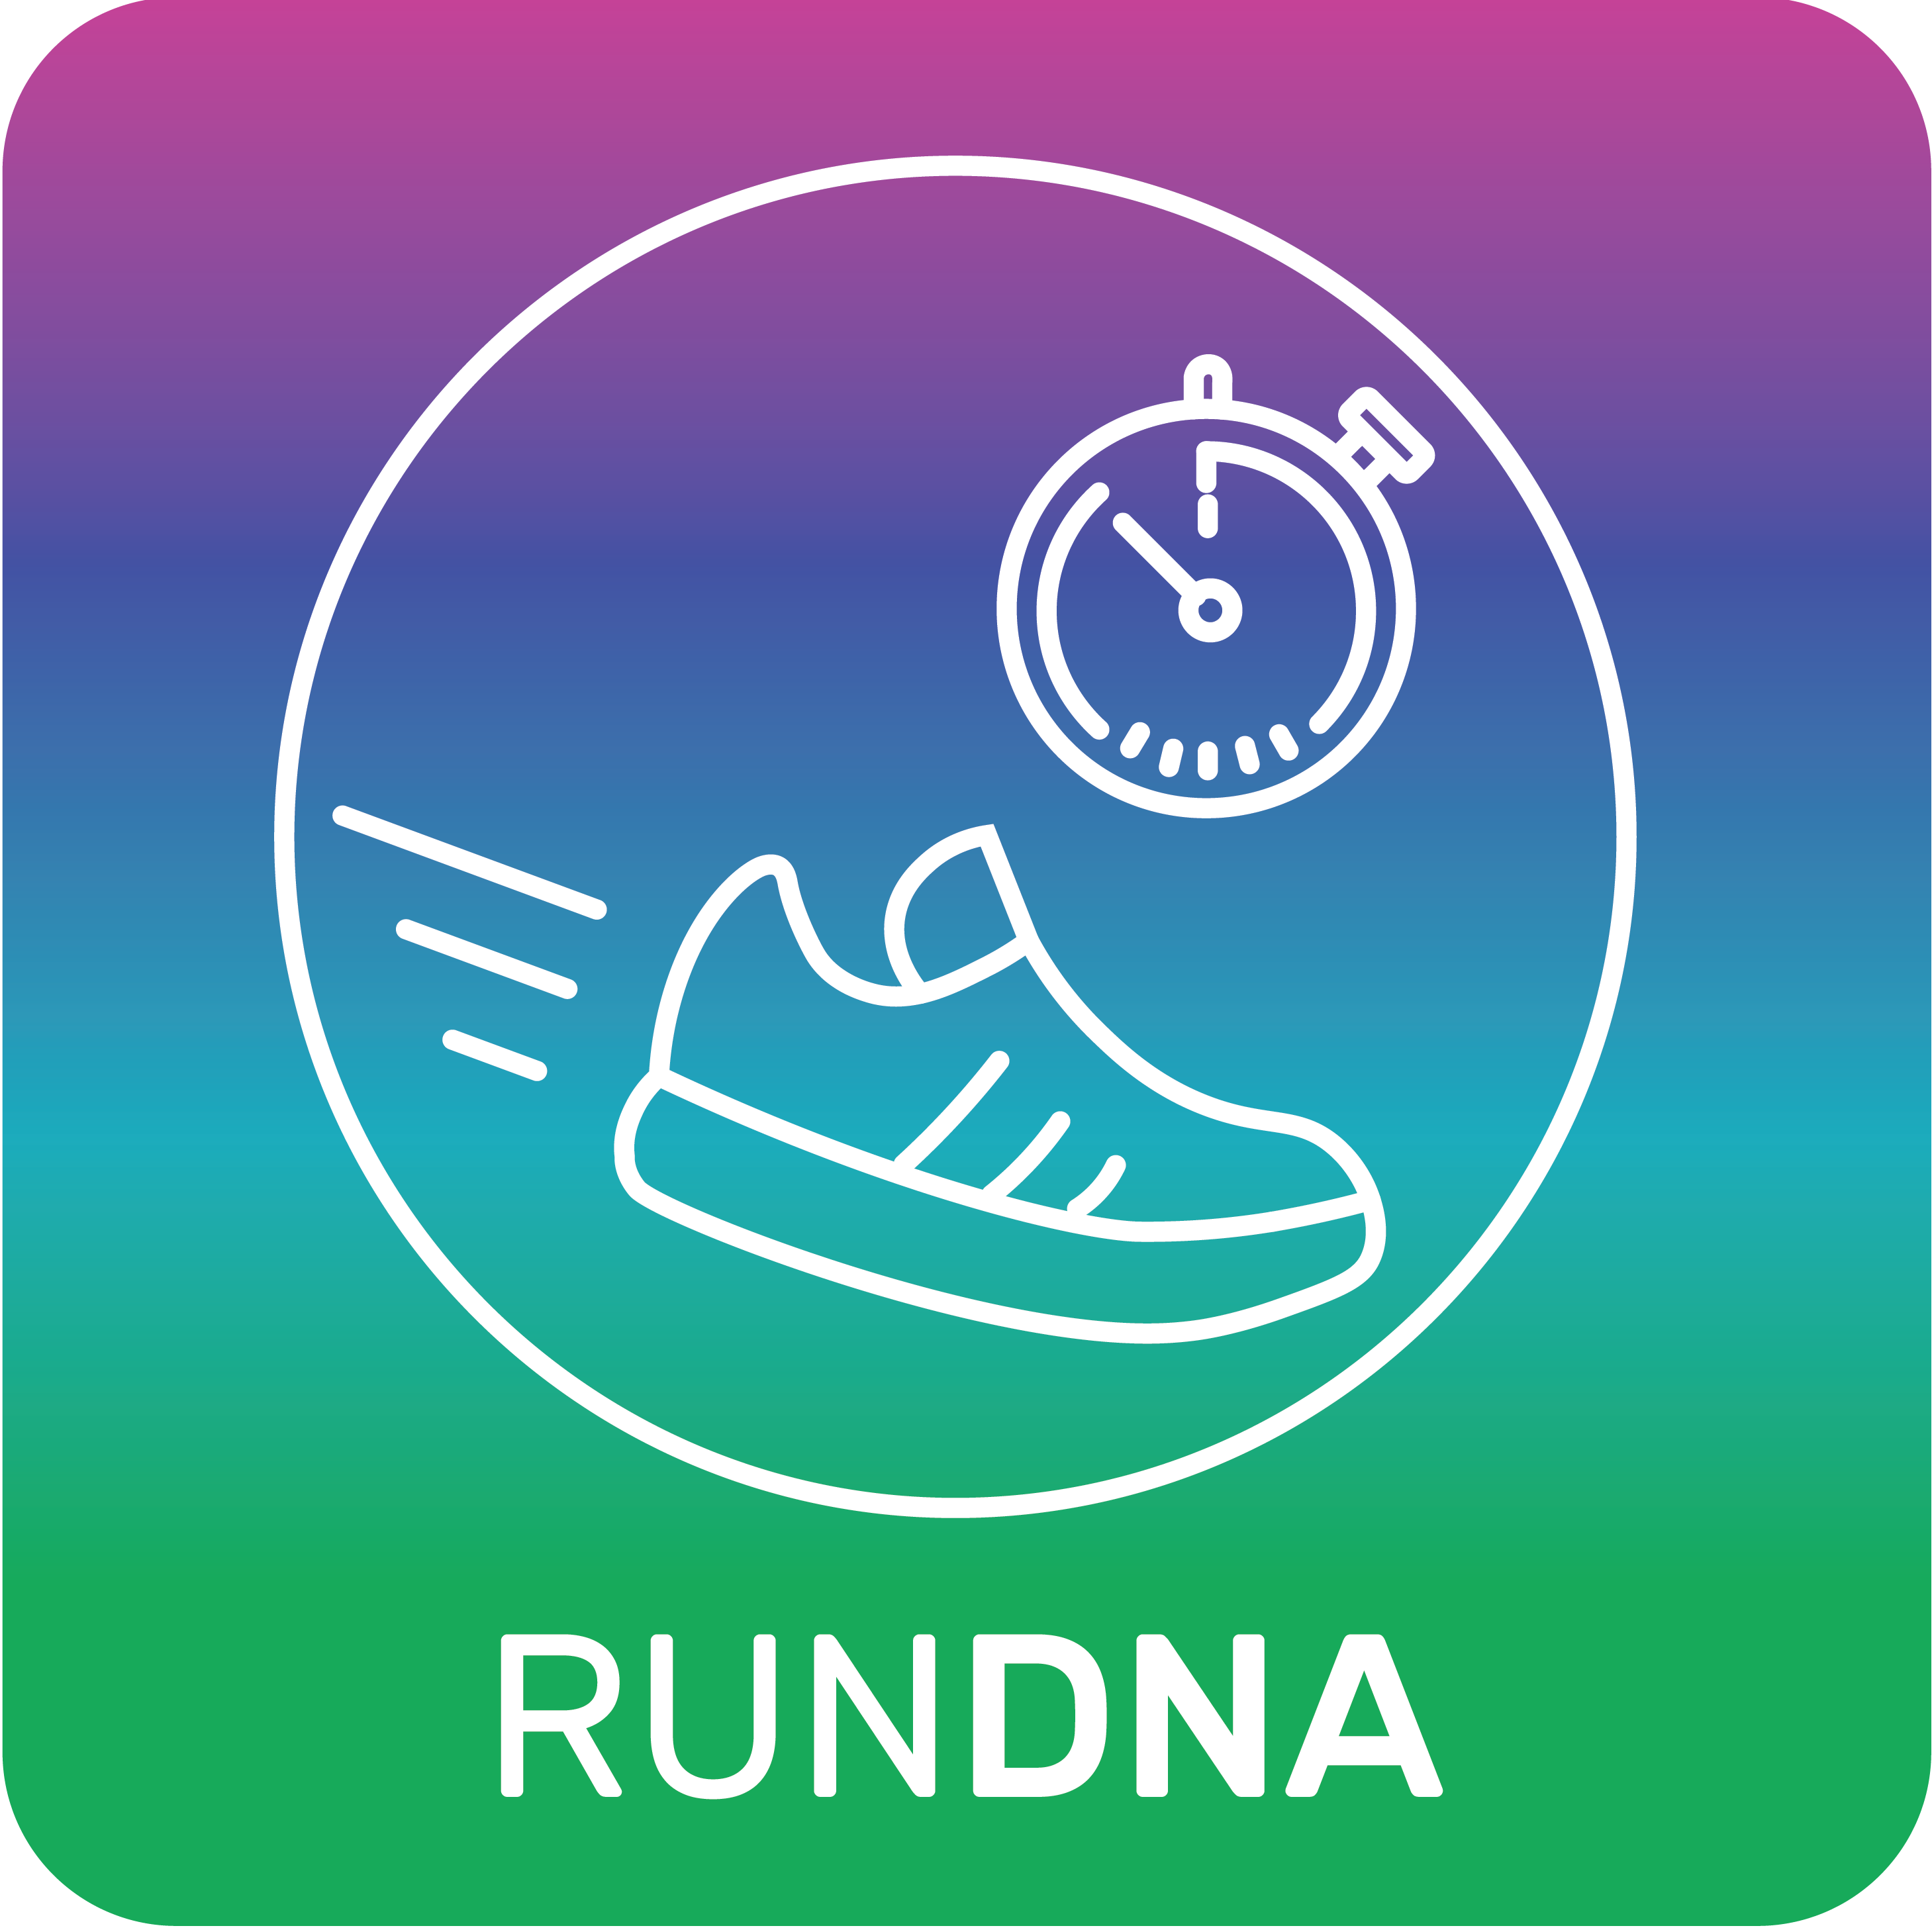 Run DNA app from Toolbox Genomics in Sequencing.com's Genome App Store provides DNA personalized fitness and athletic training guidance that works with DNA data from all genetic tests including AncestryDNA, 23andMe, FTDNA, My Heritage, Genes for Good (GFG), Helix, All Of Us, Dante Labs, Illumina, Living DNA, exome, exome plus and whole genome sequencing.